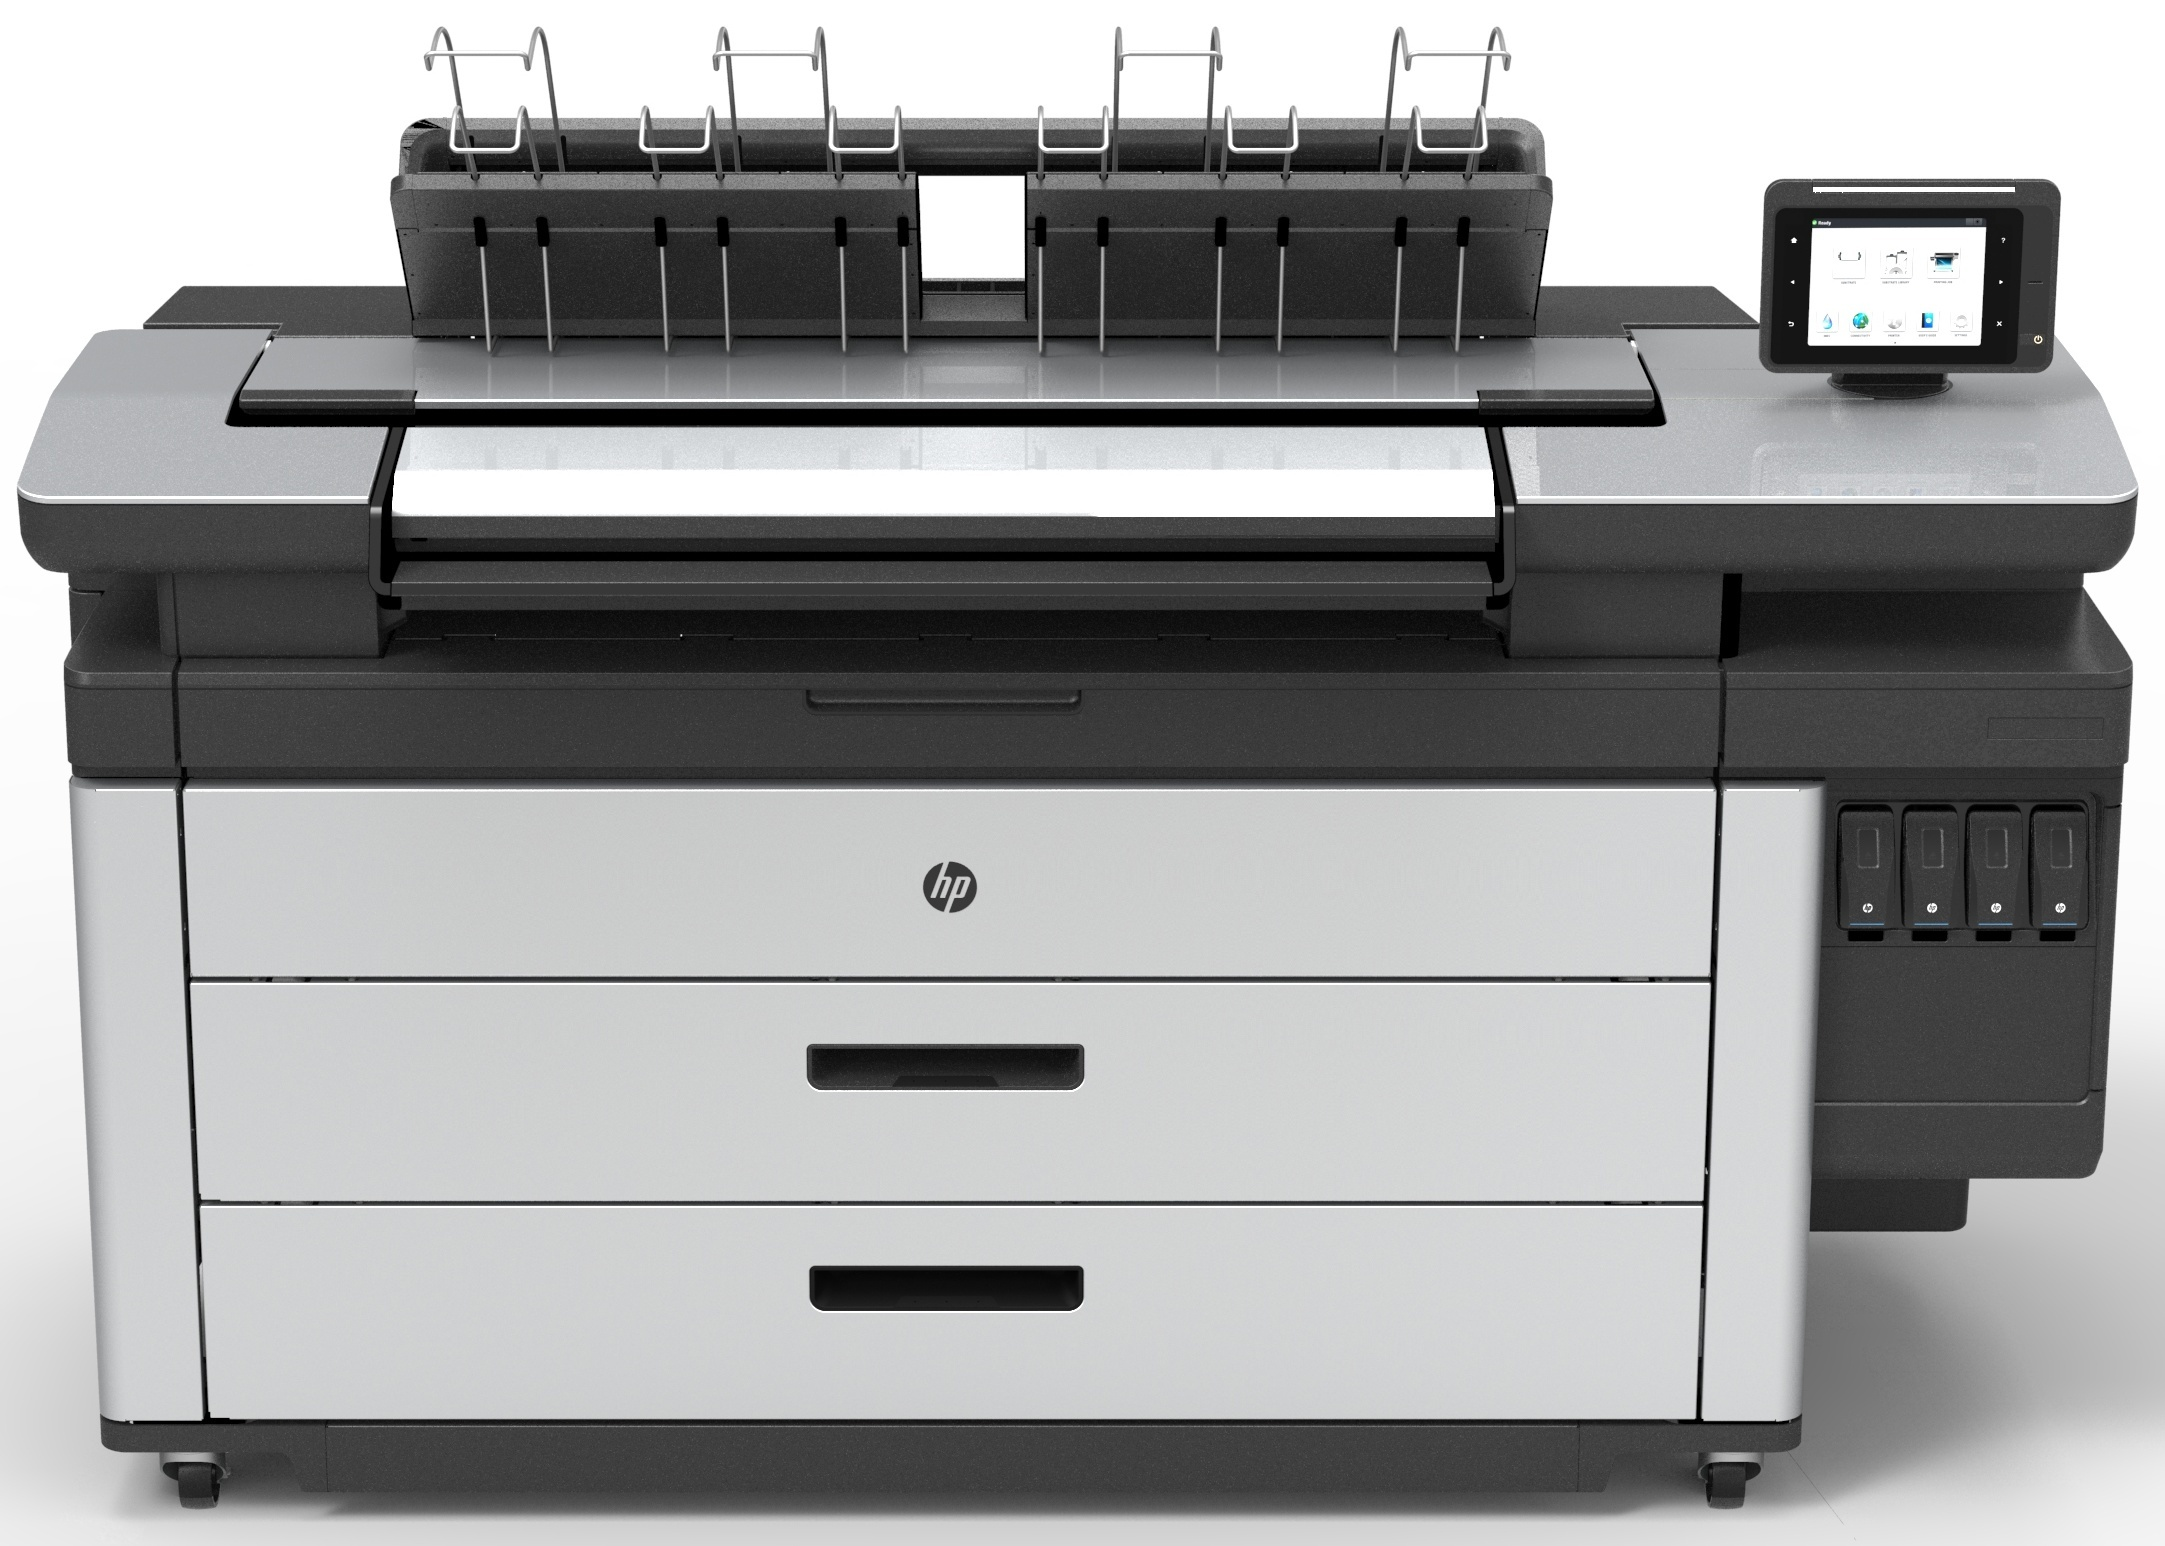 HP PageWide - Single Pass Plotter Technology